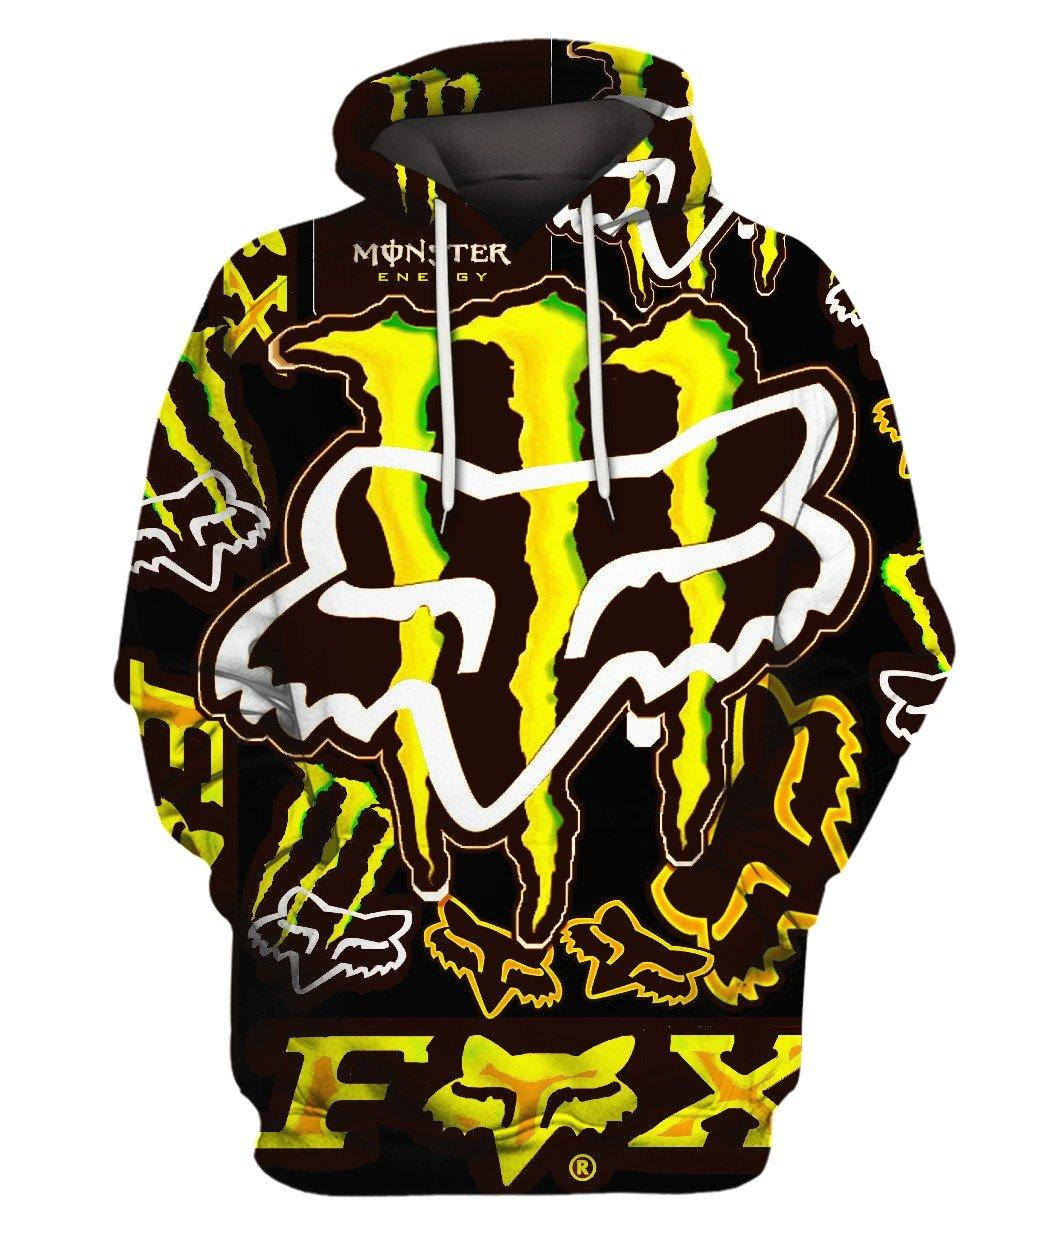 Fox Monster Energy Yellow 3d Full Print Hoodie 3d Graphic Printed Tshirt Hoodie Up To 5xl